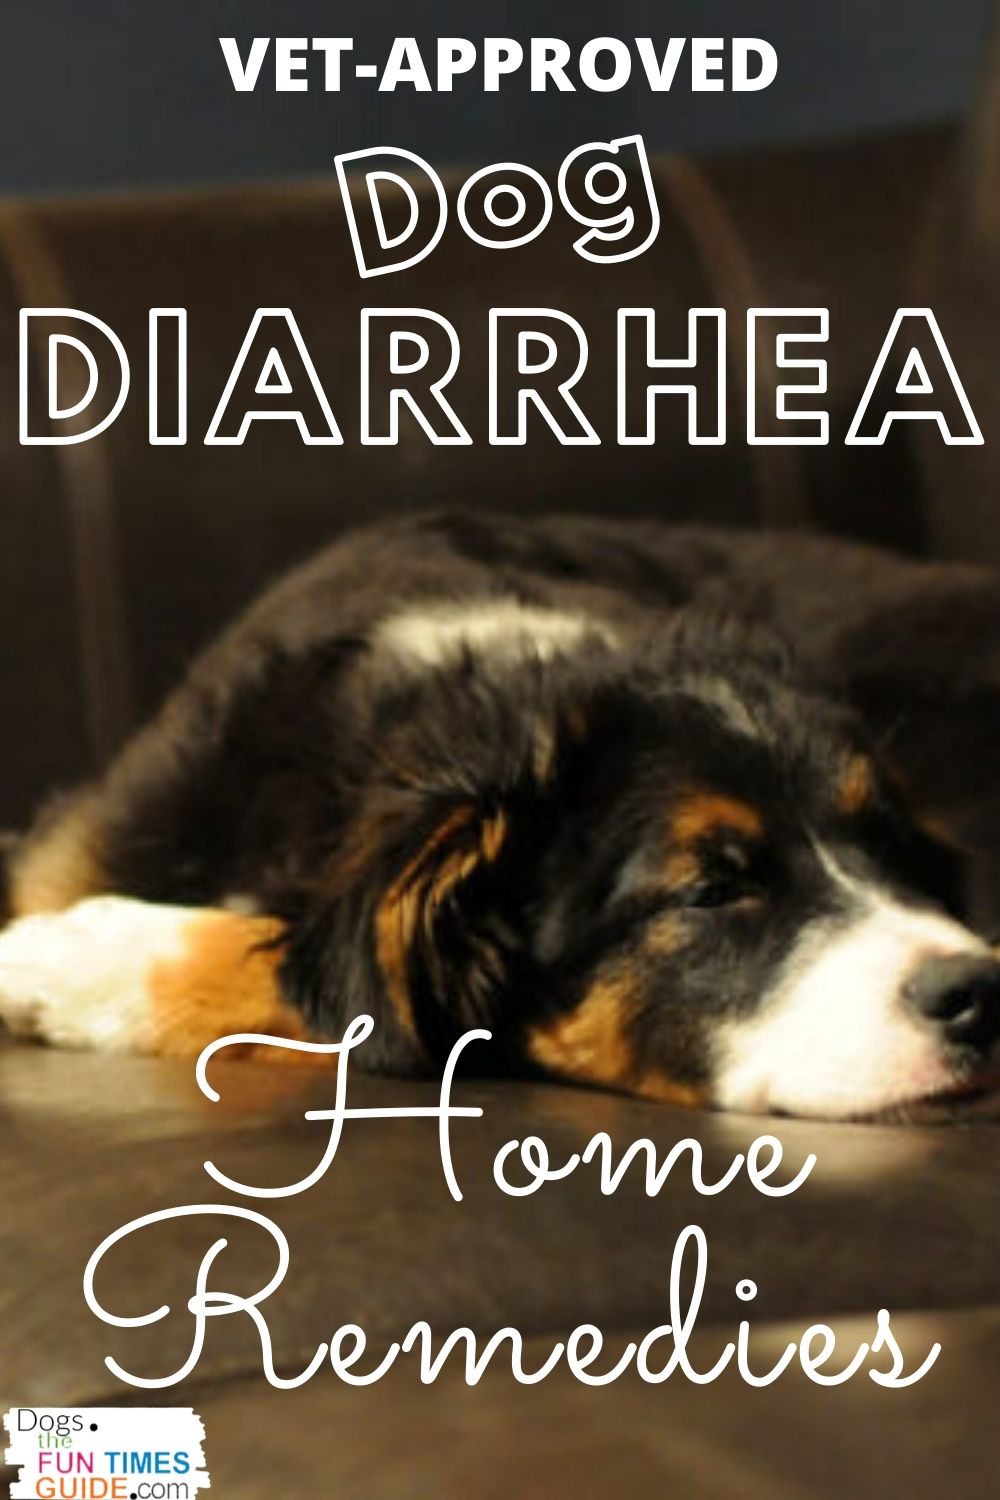 Dog Diarrhea Home Remedies That I Learned While Working For A Vet (Bland Diets That Work + OTC Meds To Try)